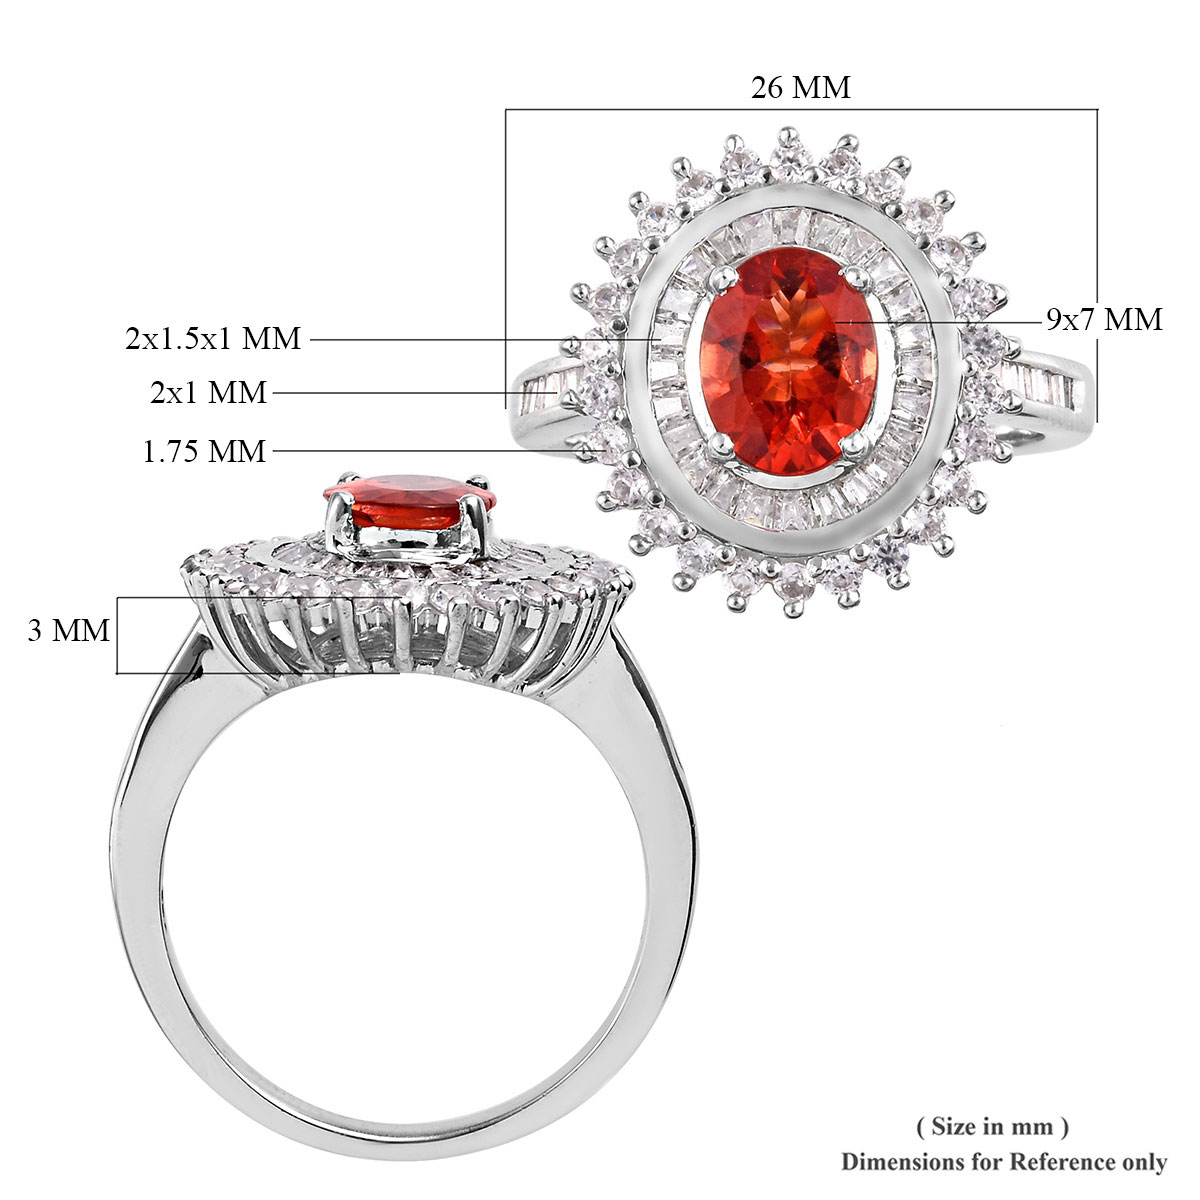 Red Andesine, Zircon Ring in Platinum Over Sterling Silver (Size 7.0) 3.27 ctw